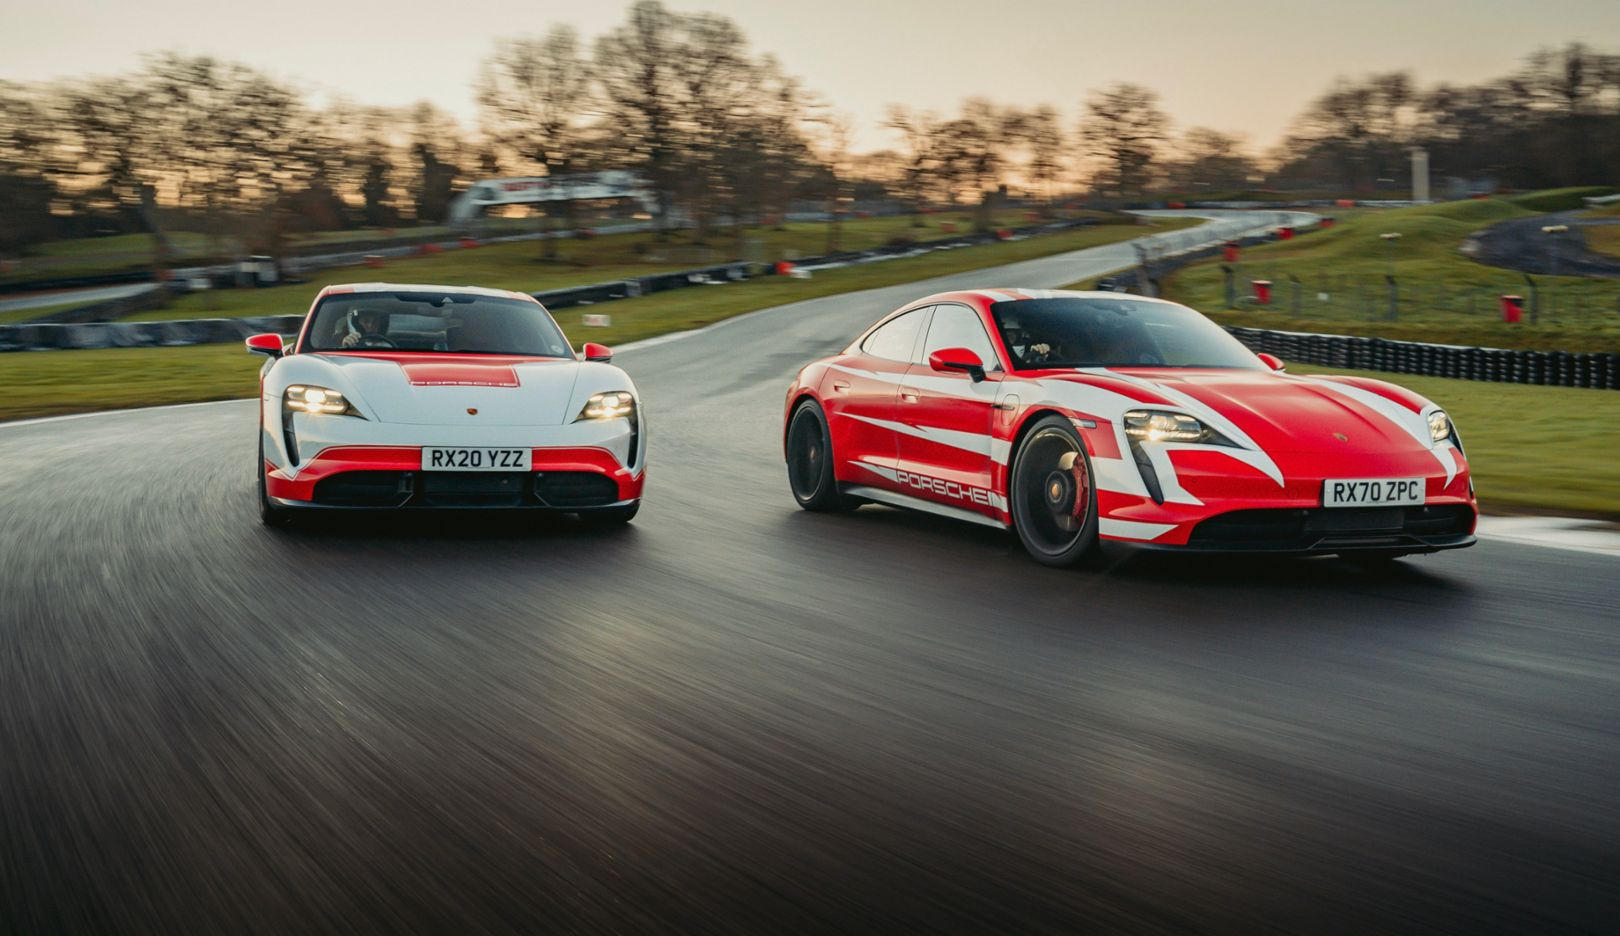 Porsche Taycan races into the record books